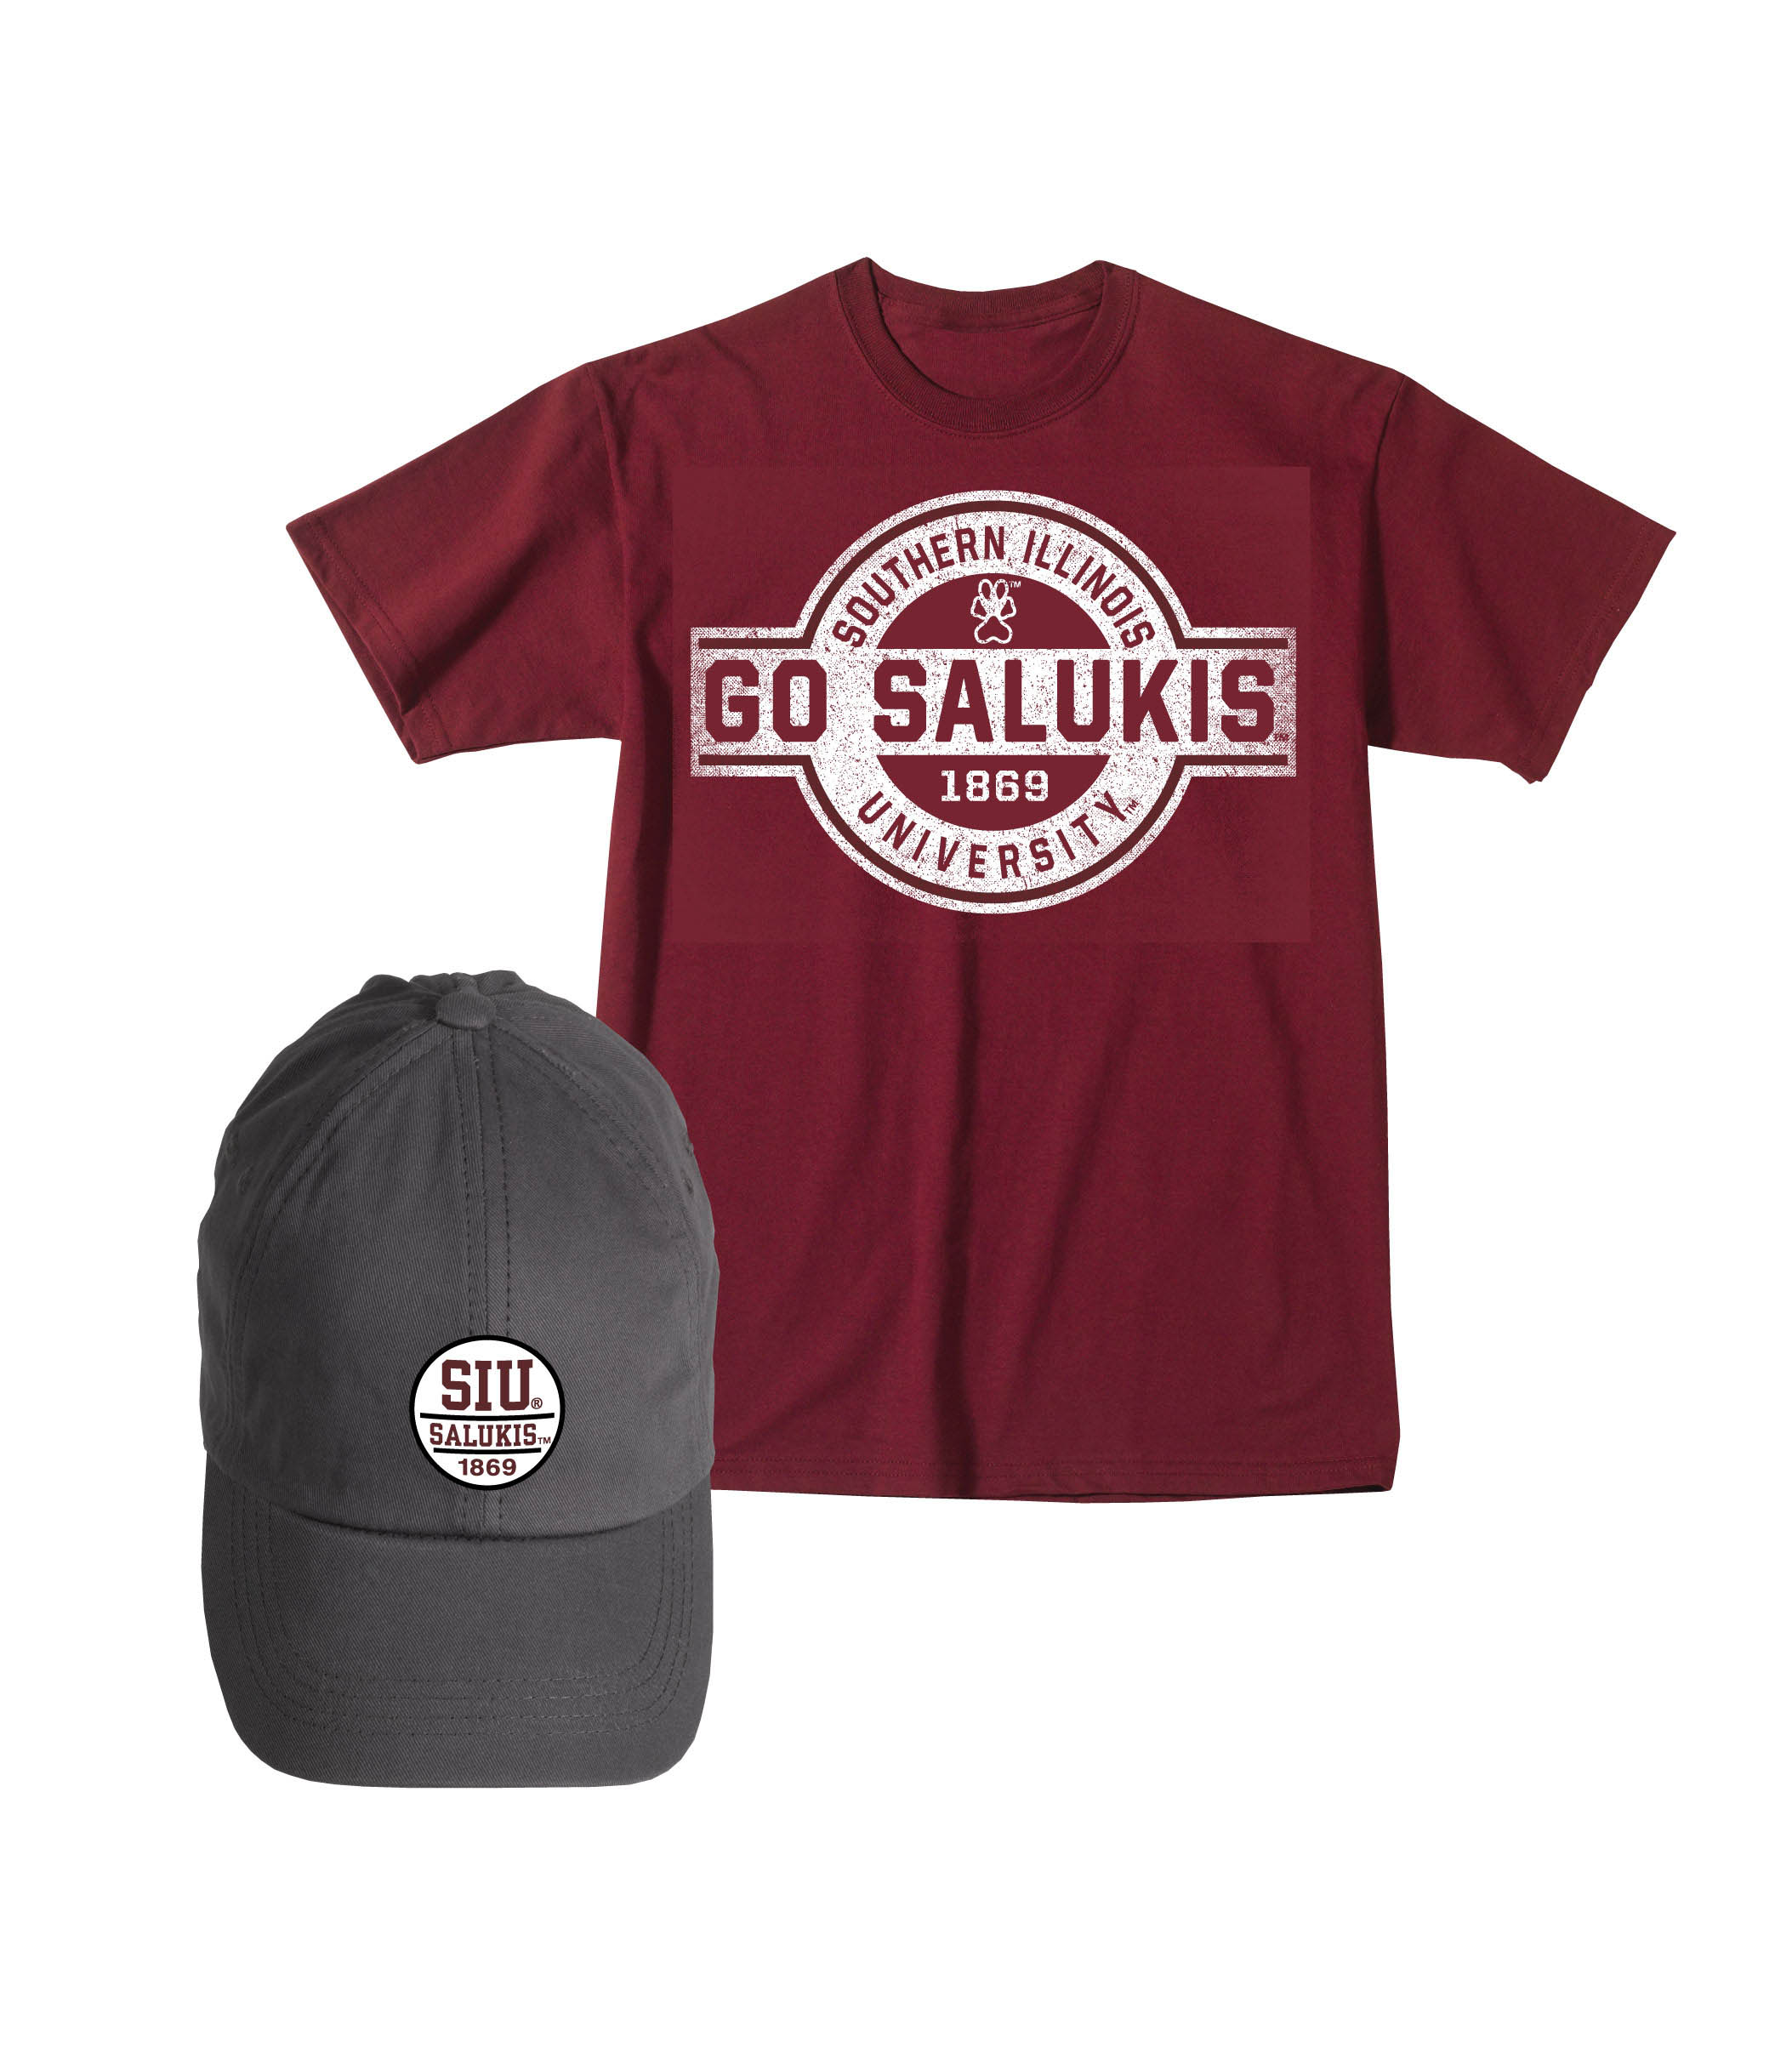 Image for the MV SPORT™ SALUKIS PREMIUM T-SHIRT AND HAT COMBO product